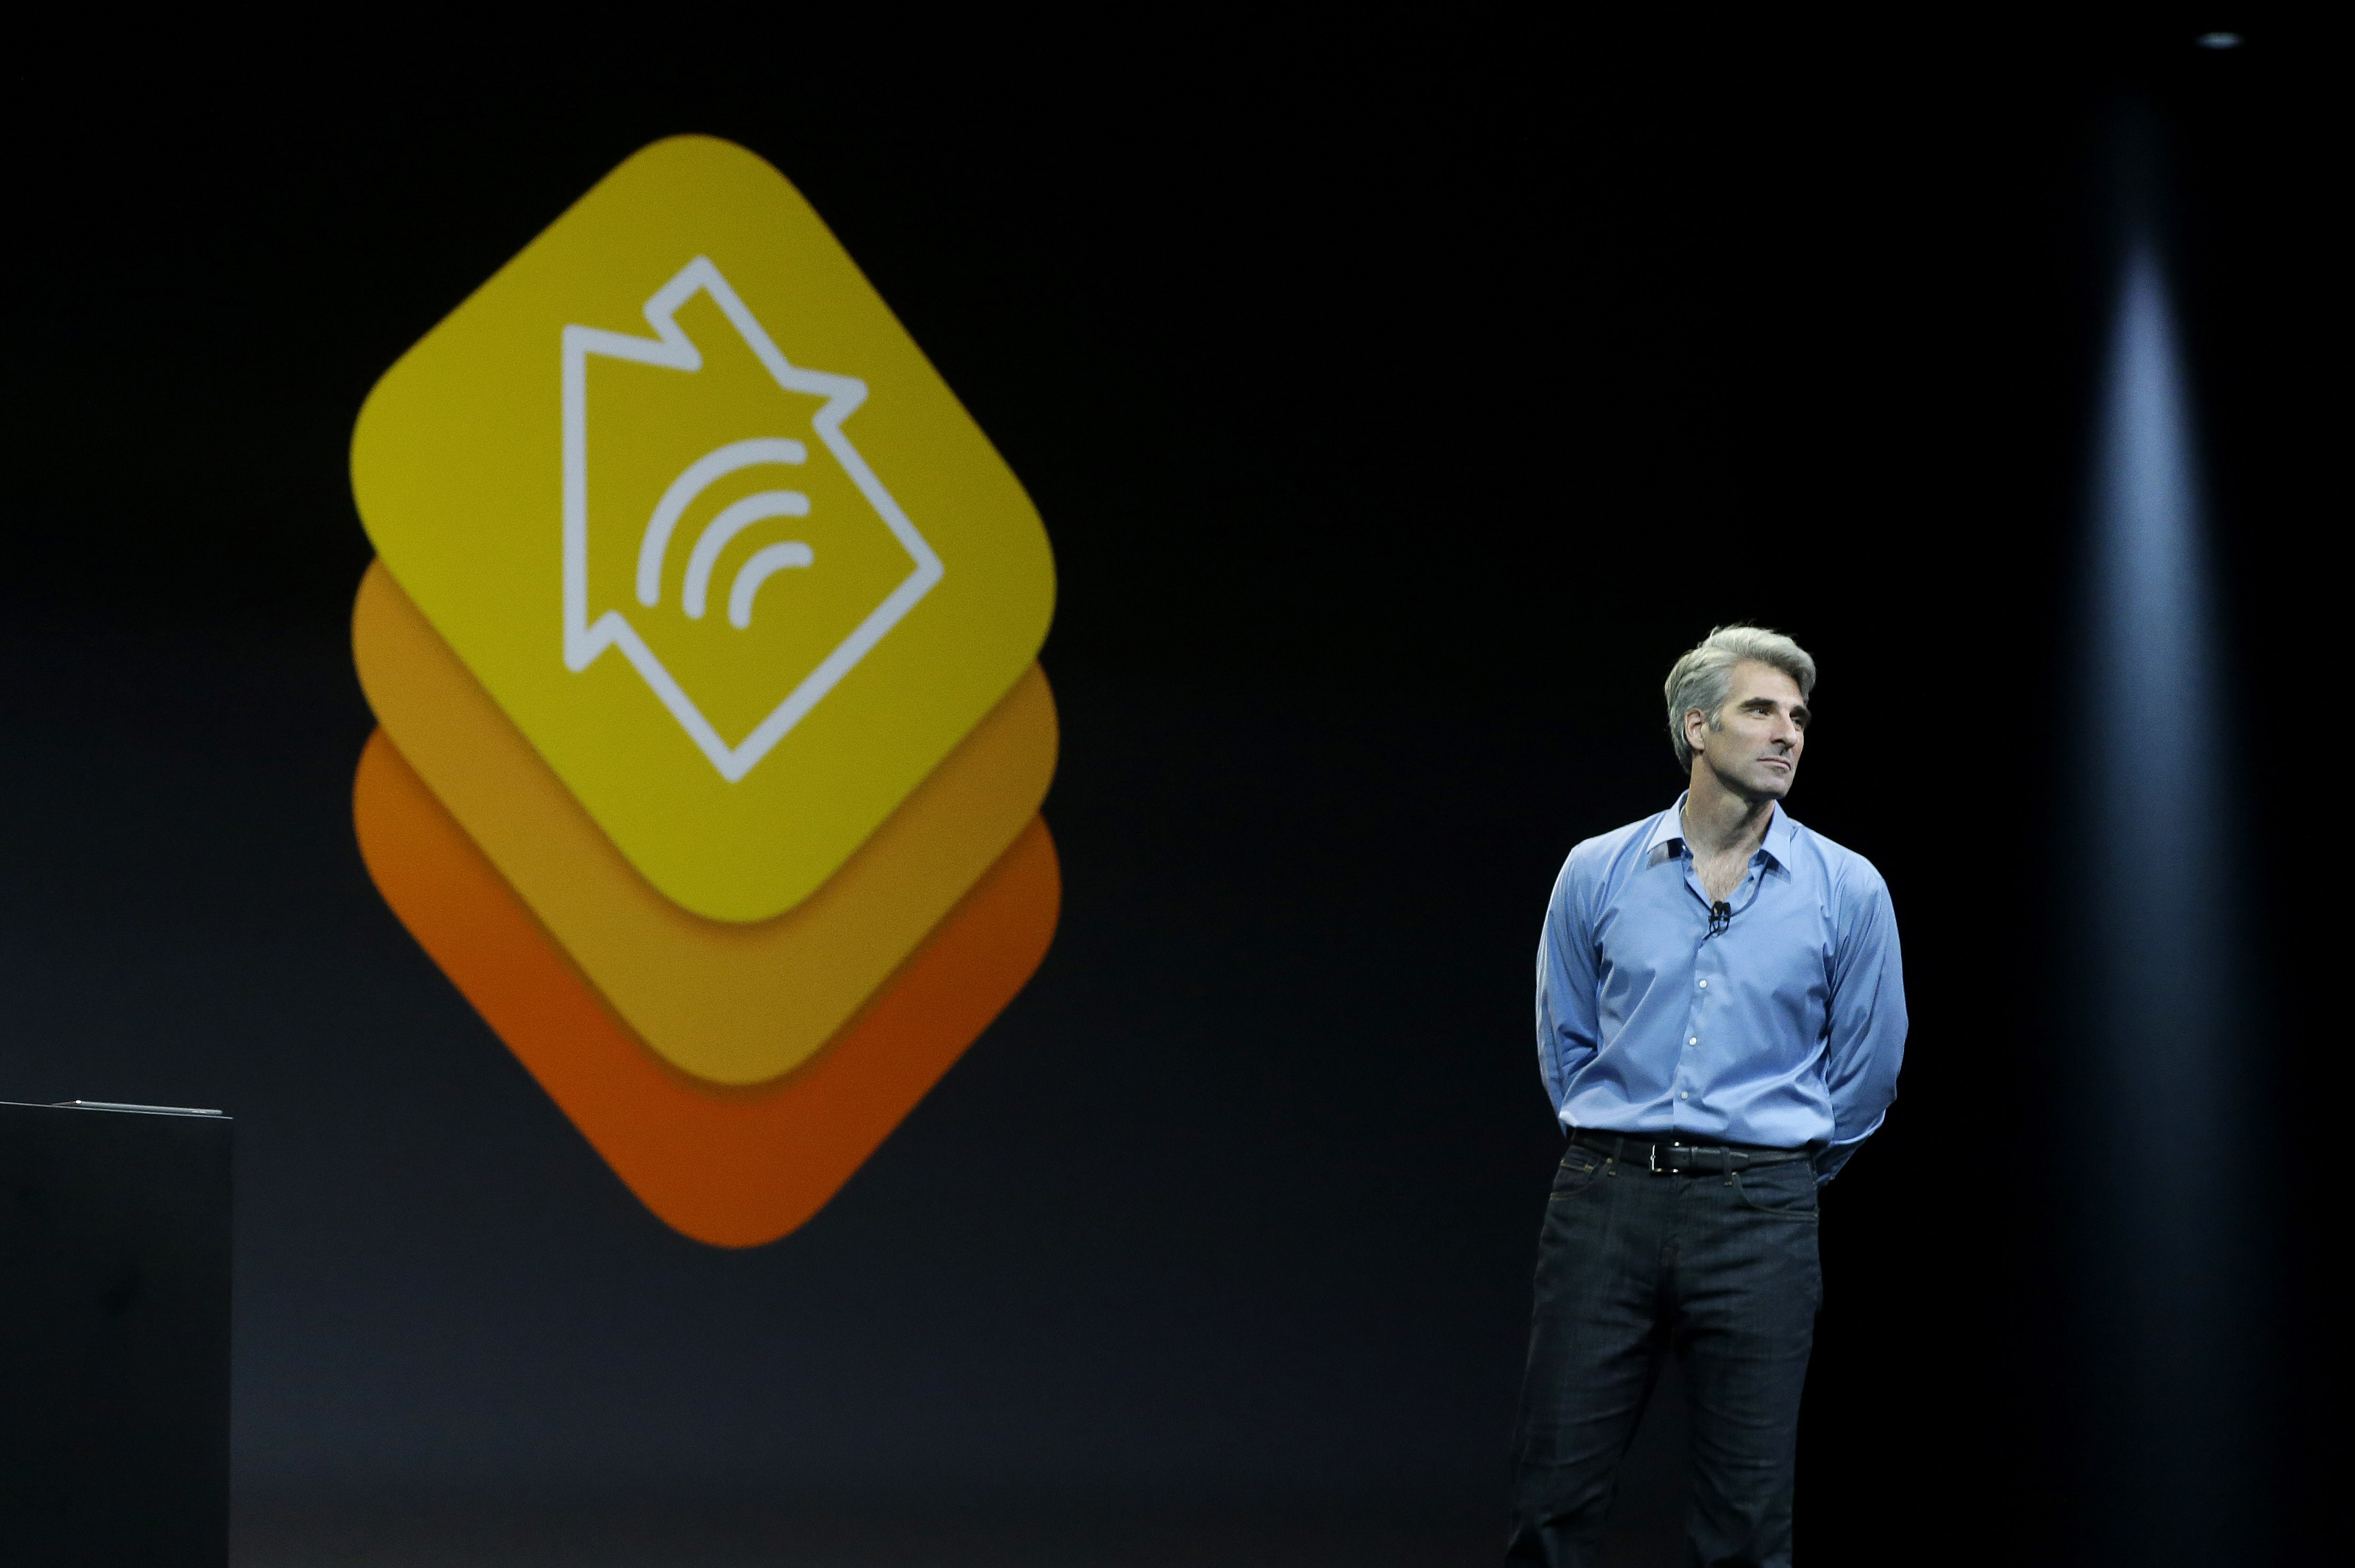 Apple senior vice president of Software Engineering Craig Federighi speaks about the Apple HomeKit app at the Apple Worldwide Developers Conference in San Francisco, Monday, June 2, 2014.